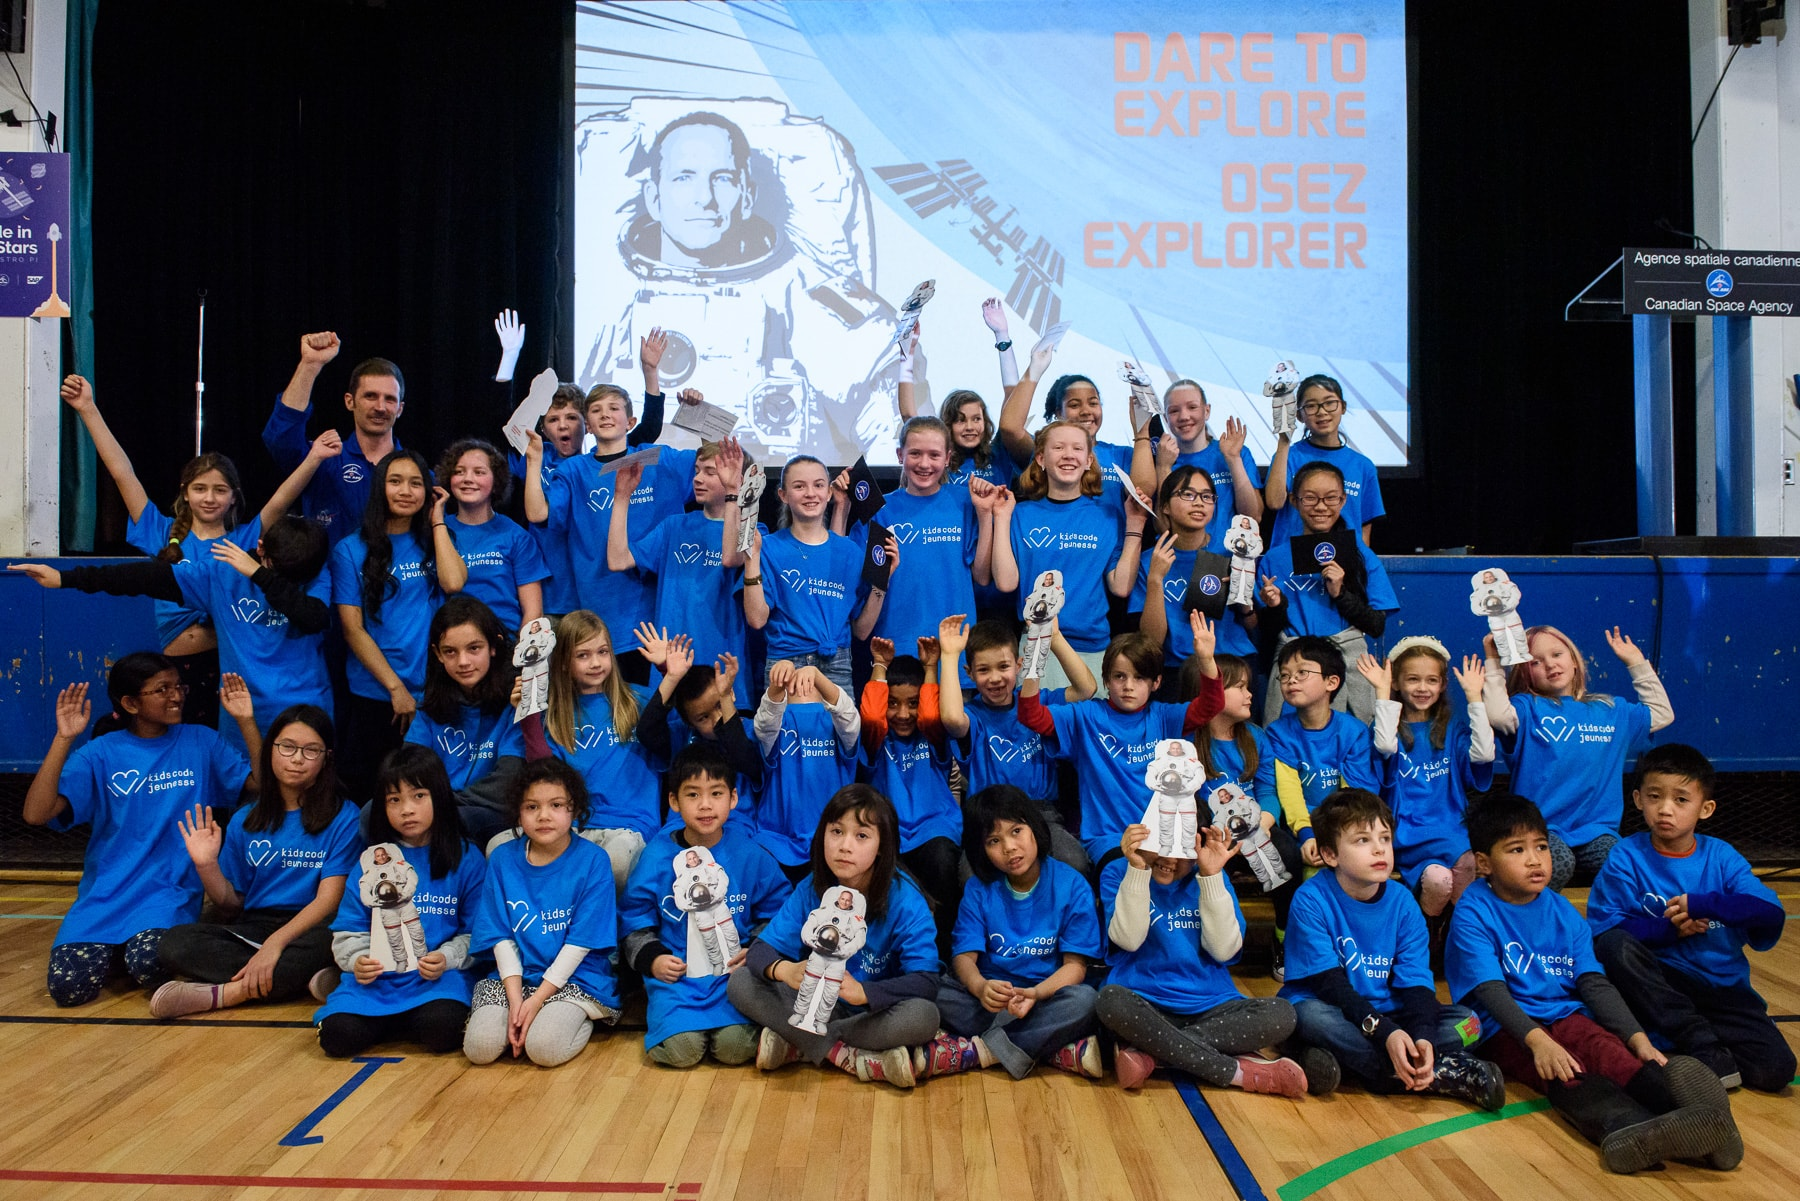 Group picture of kids cheering to the astronaut David Saint-Jacques.